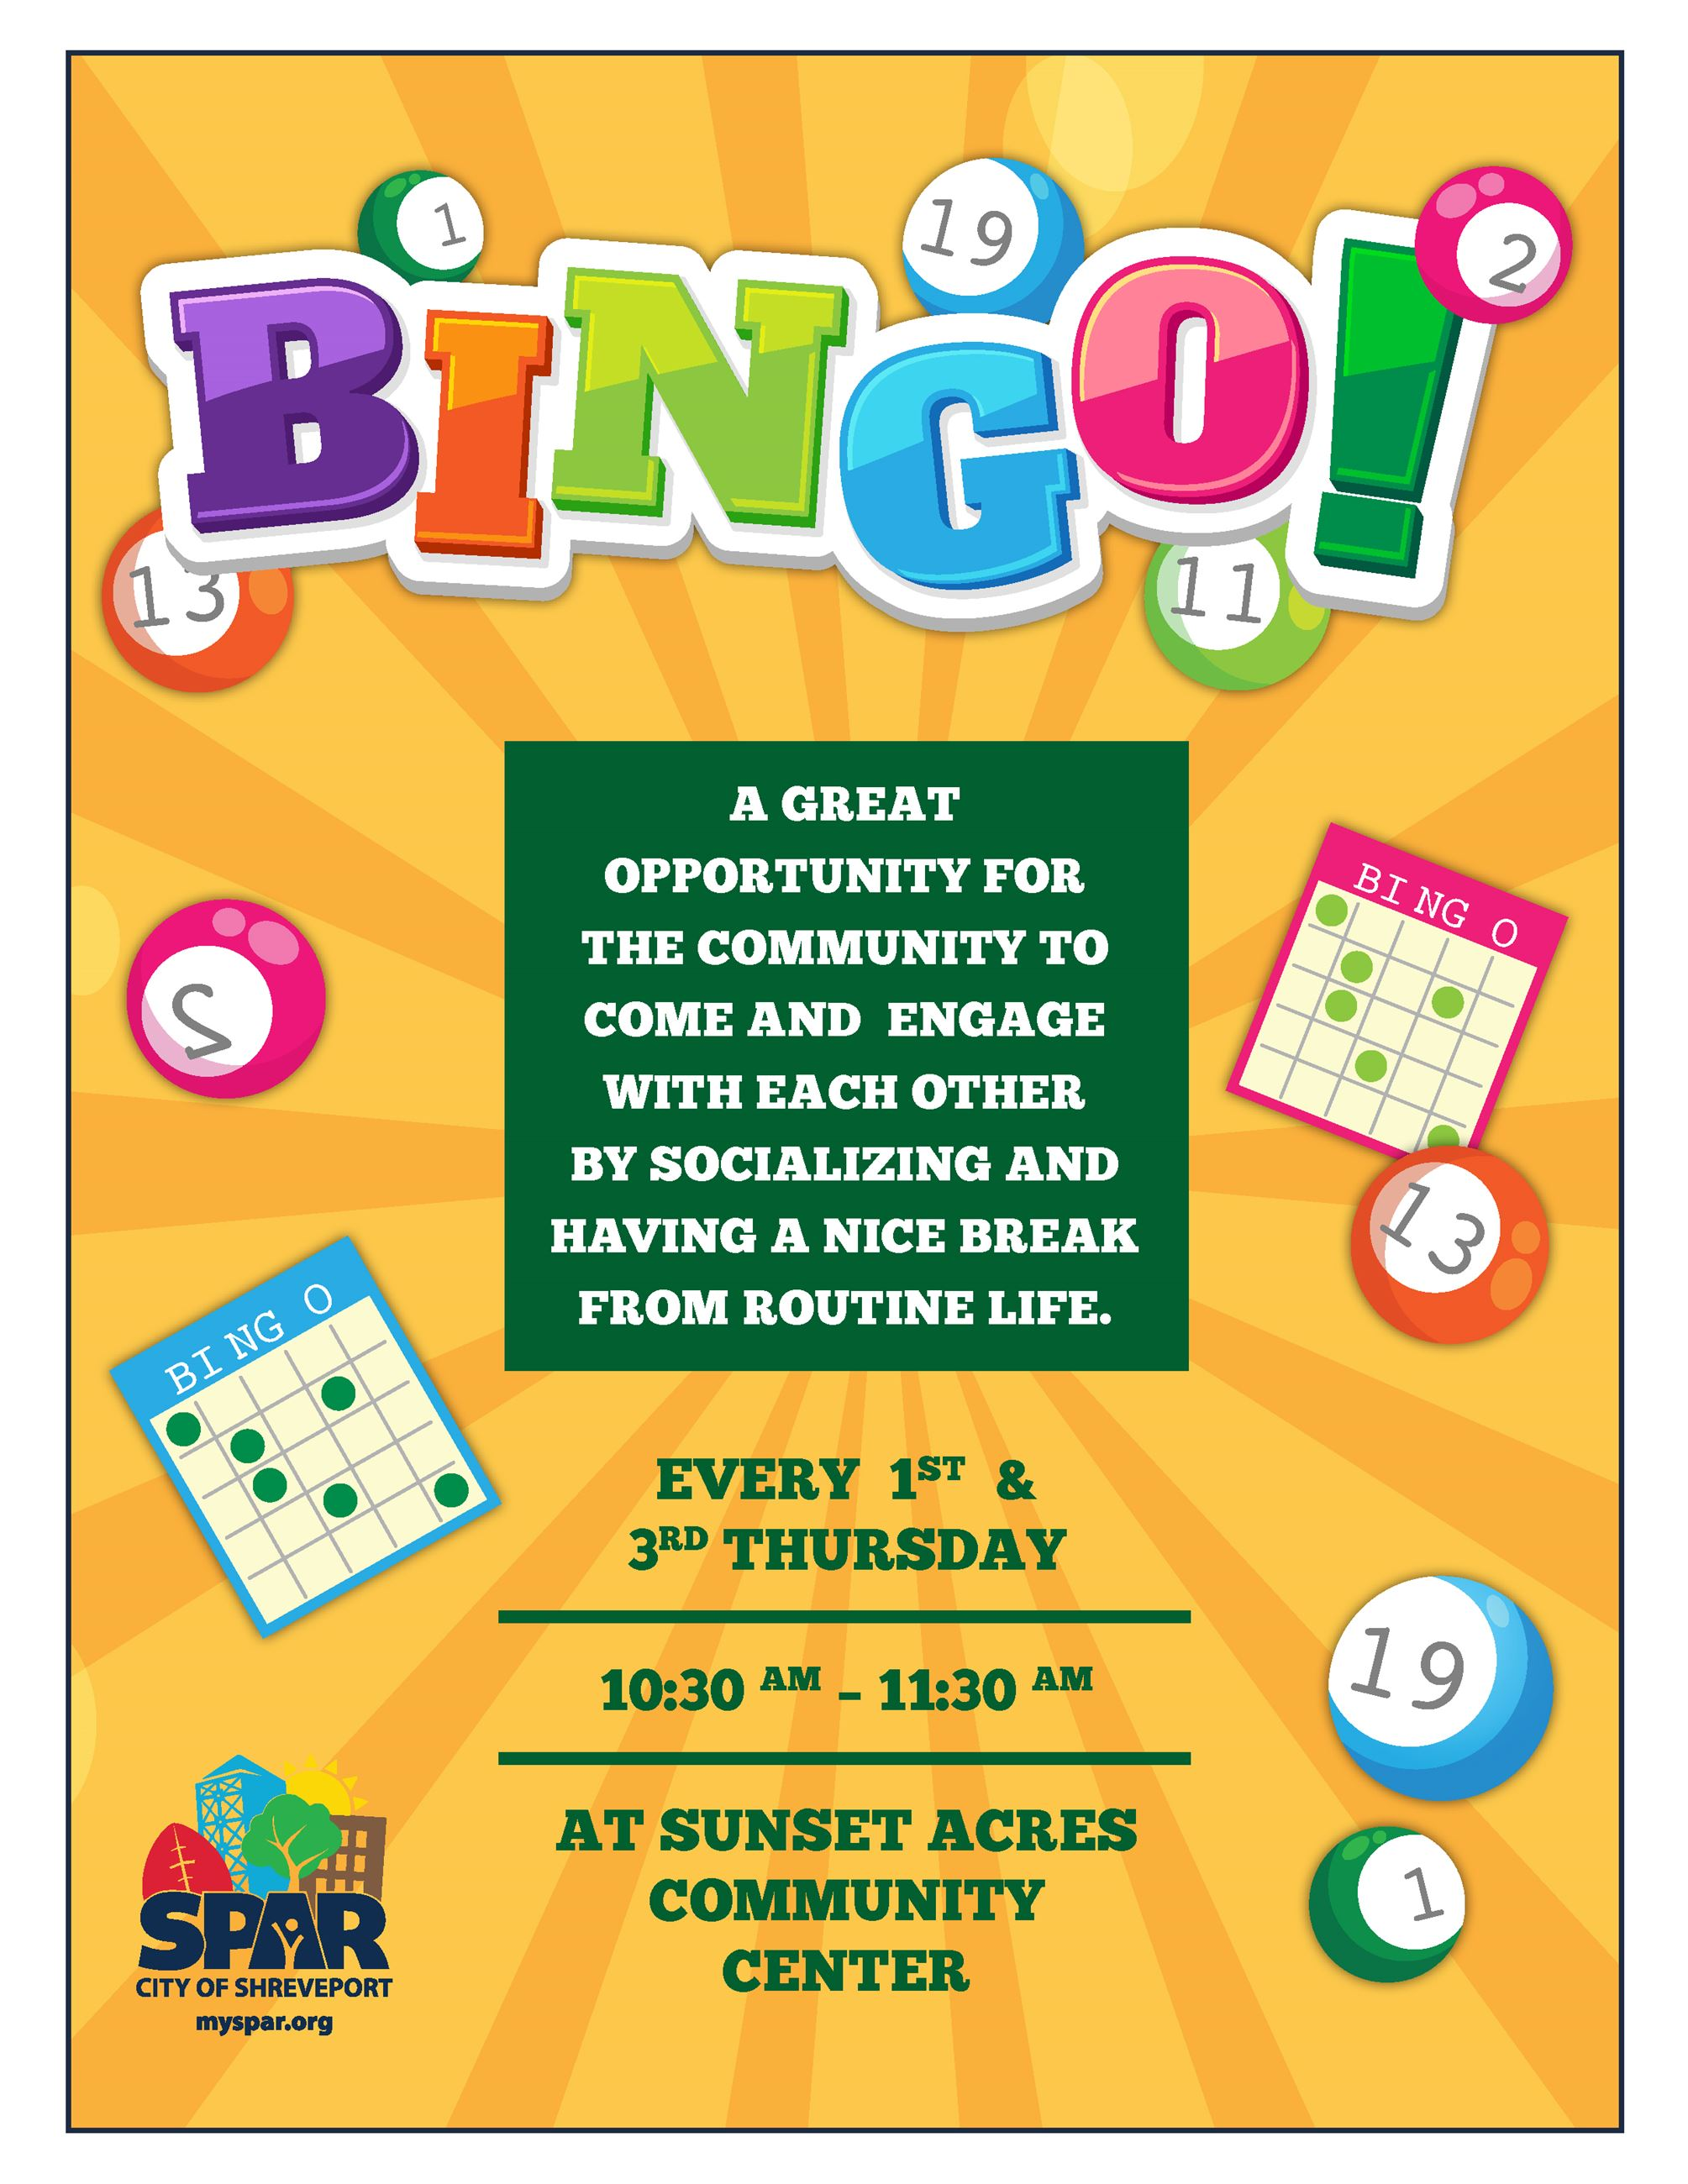 sunset acres bingo